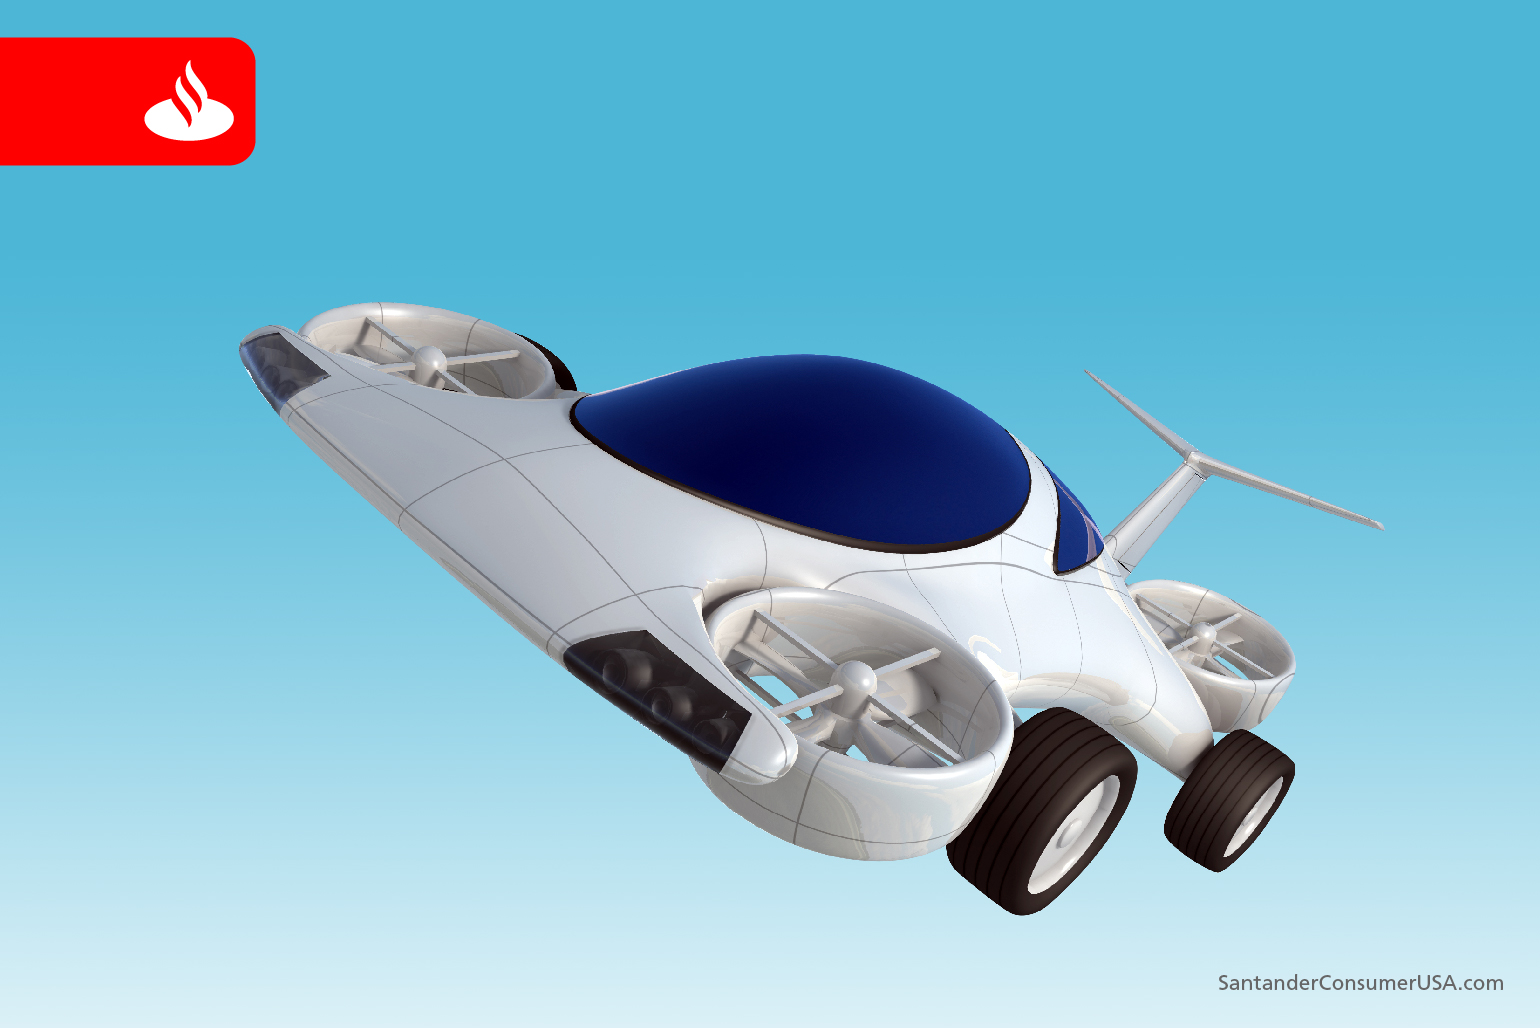 Crazy or not, flying cars may arrive sooner than you think ...